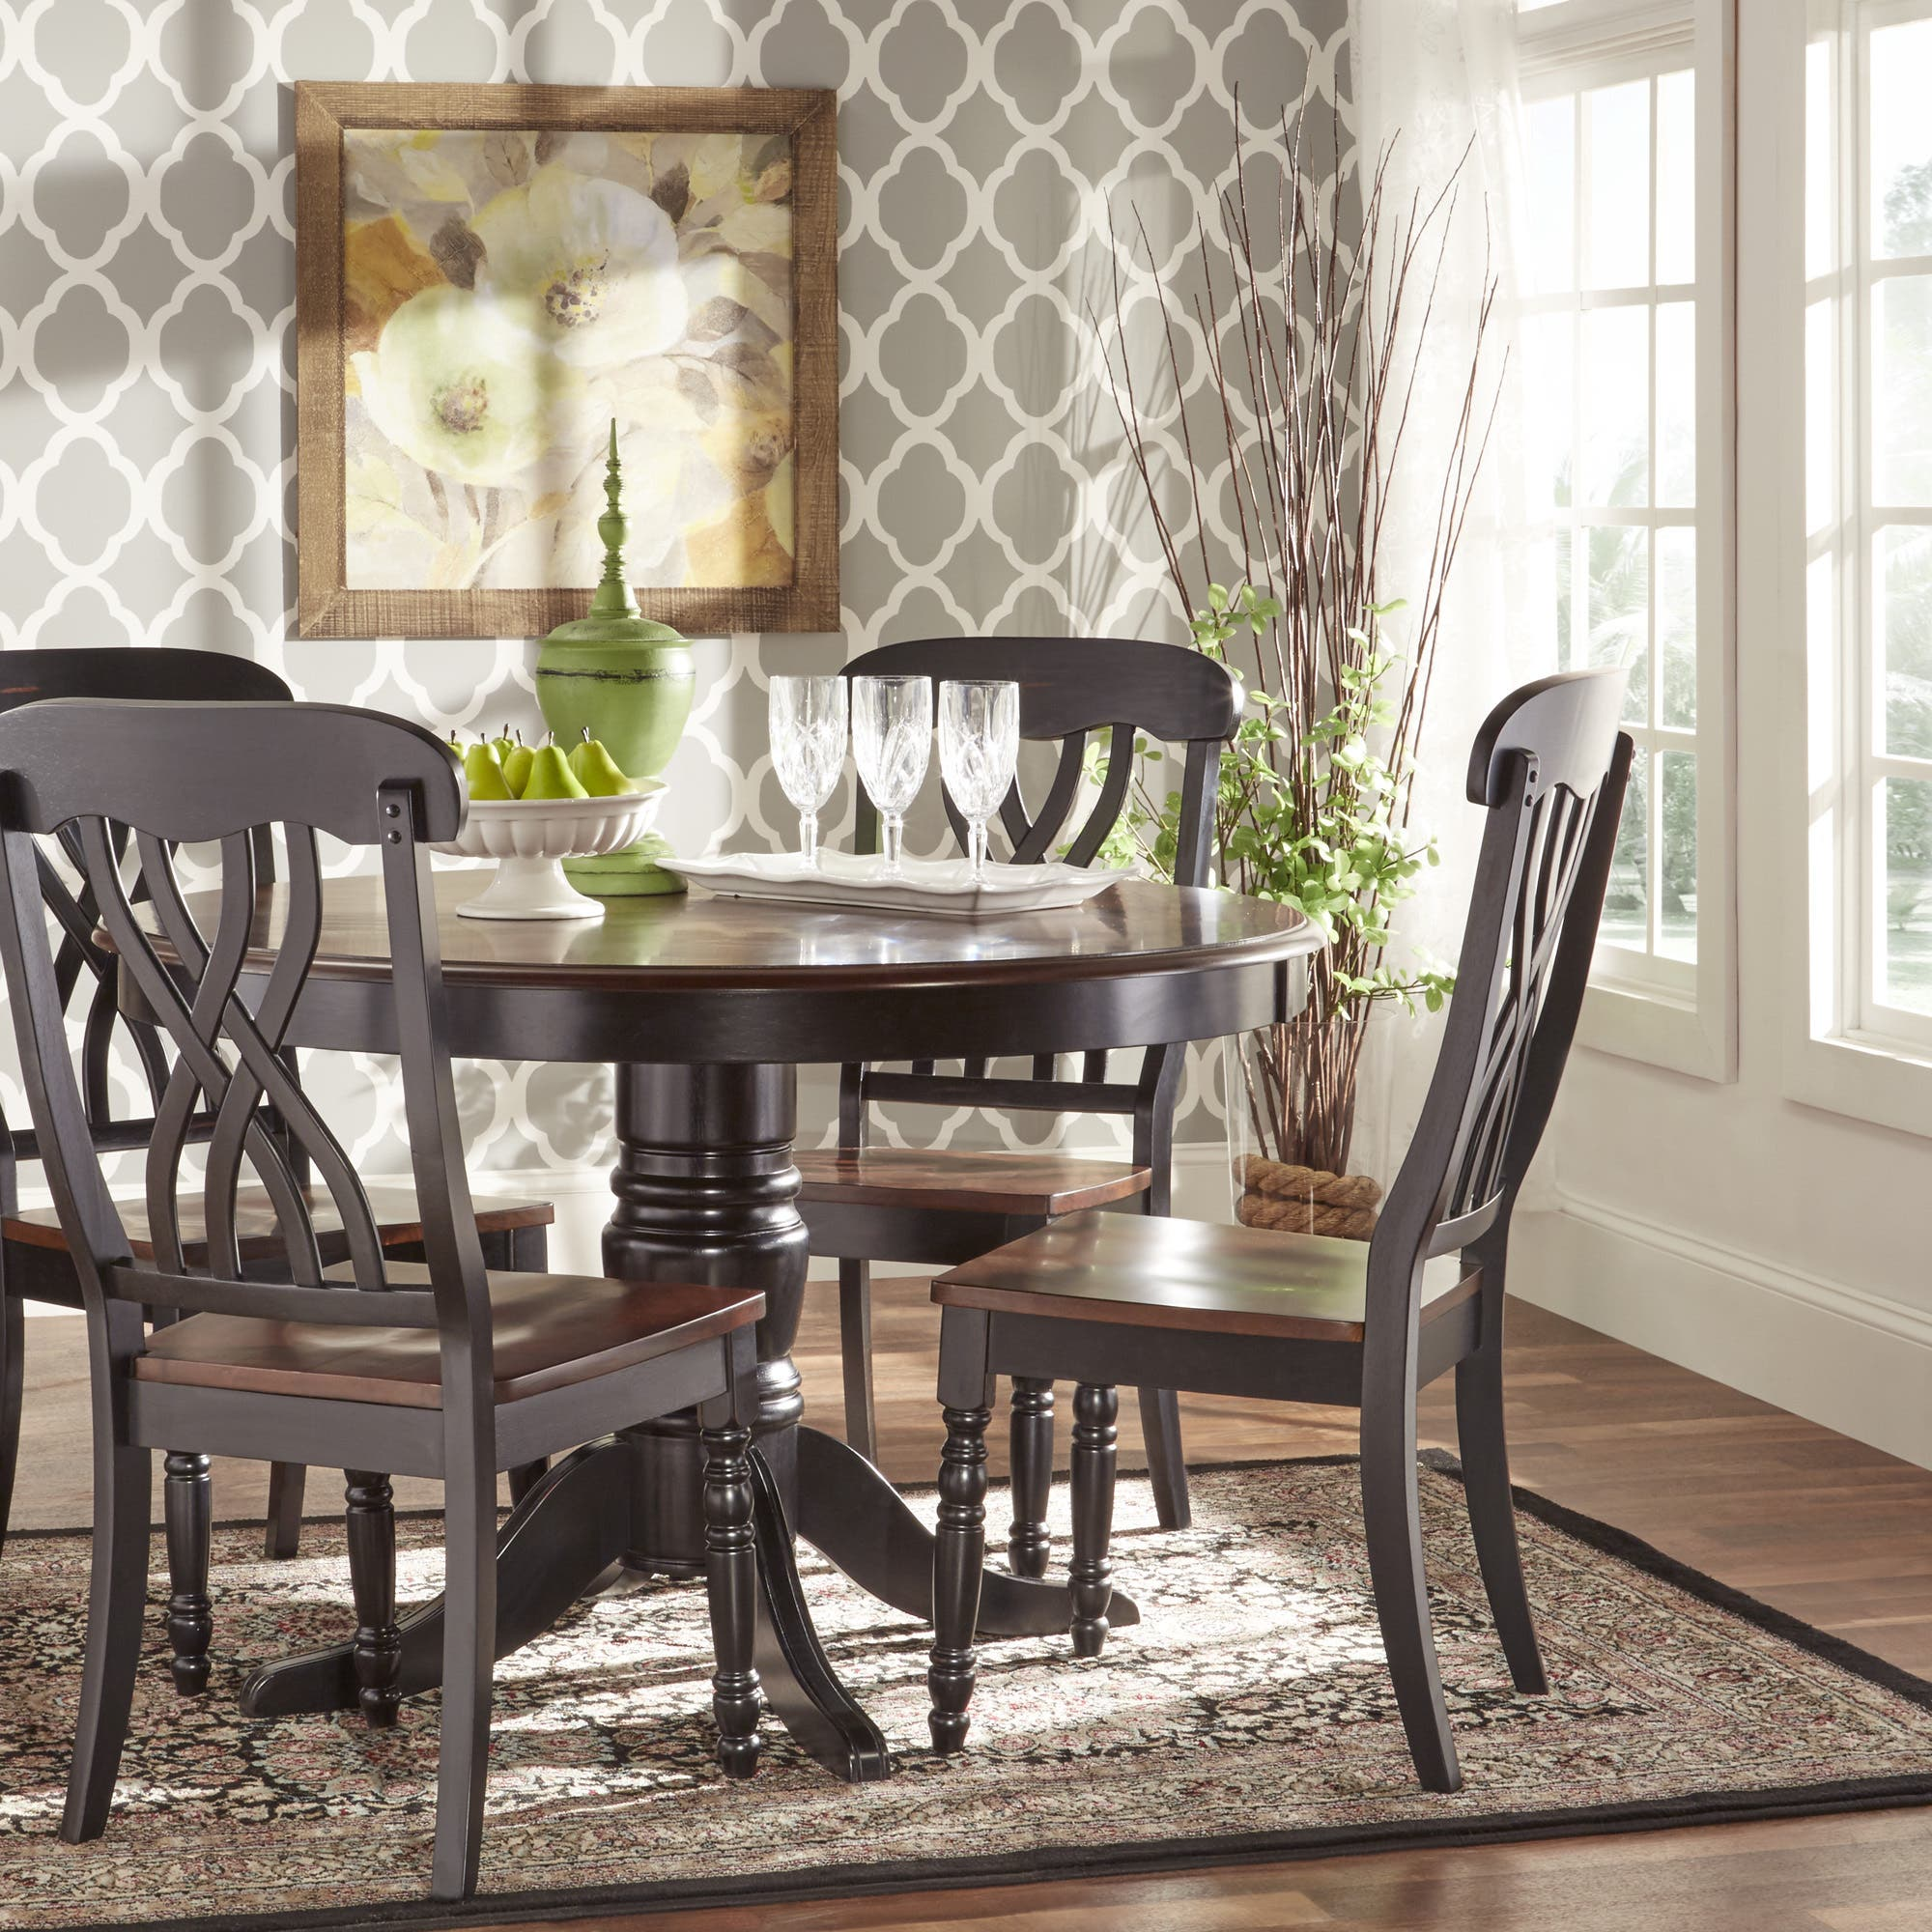 country kitchen dining set buy kitchen amp dining room sets at overstock 6053